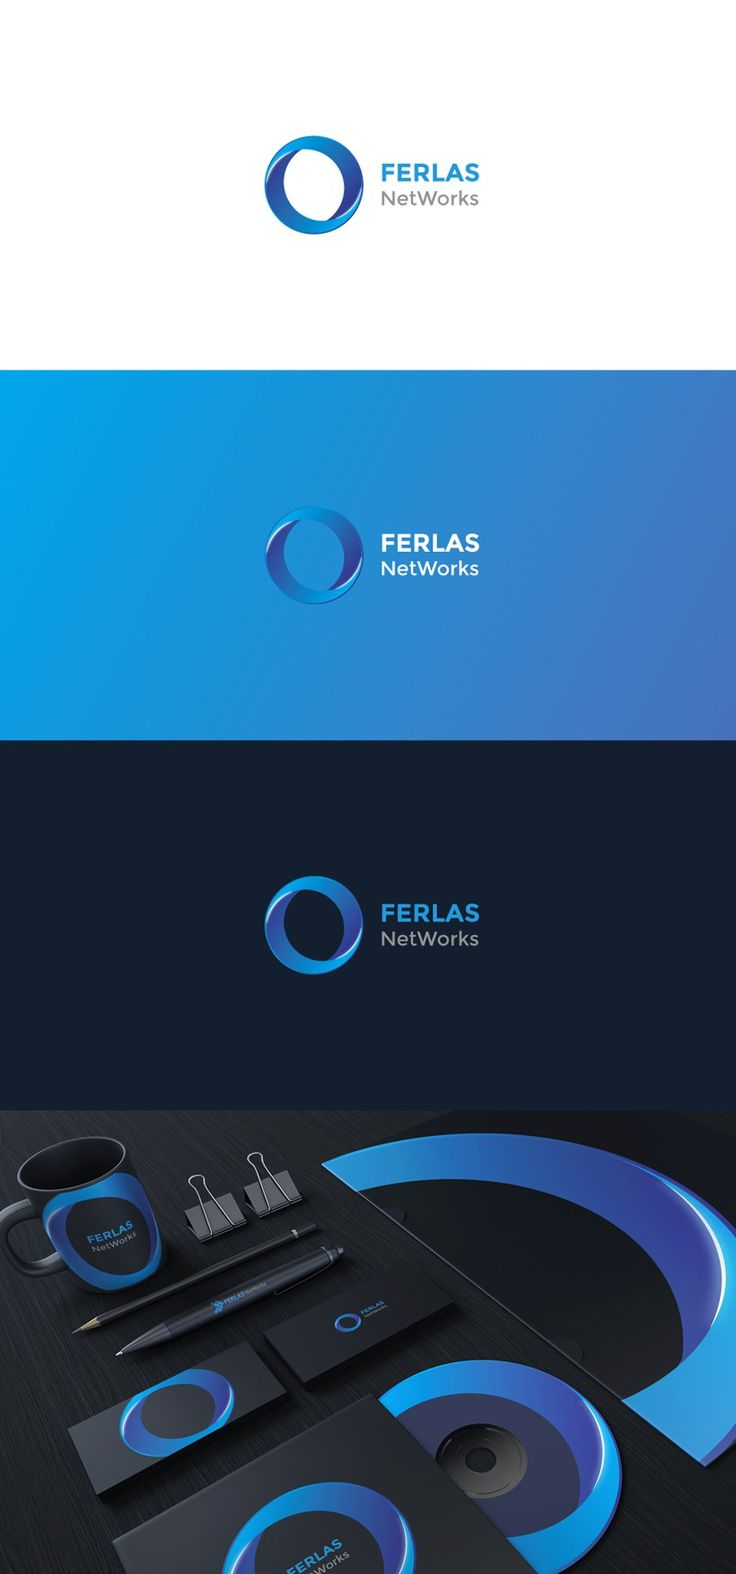 Another visual identity proposition for Ferlas NetWorks